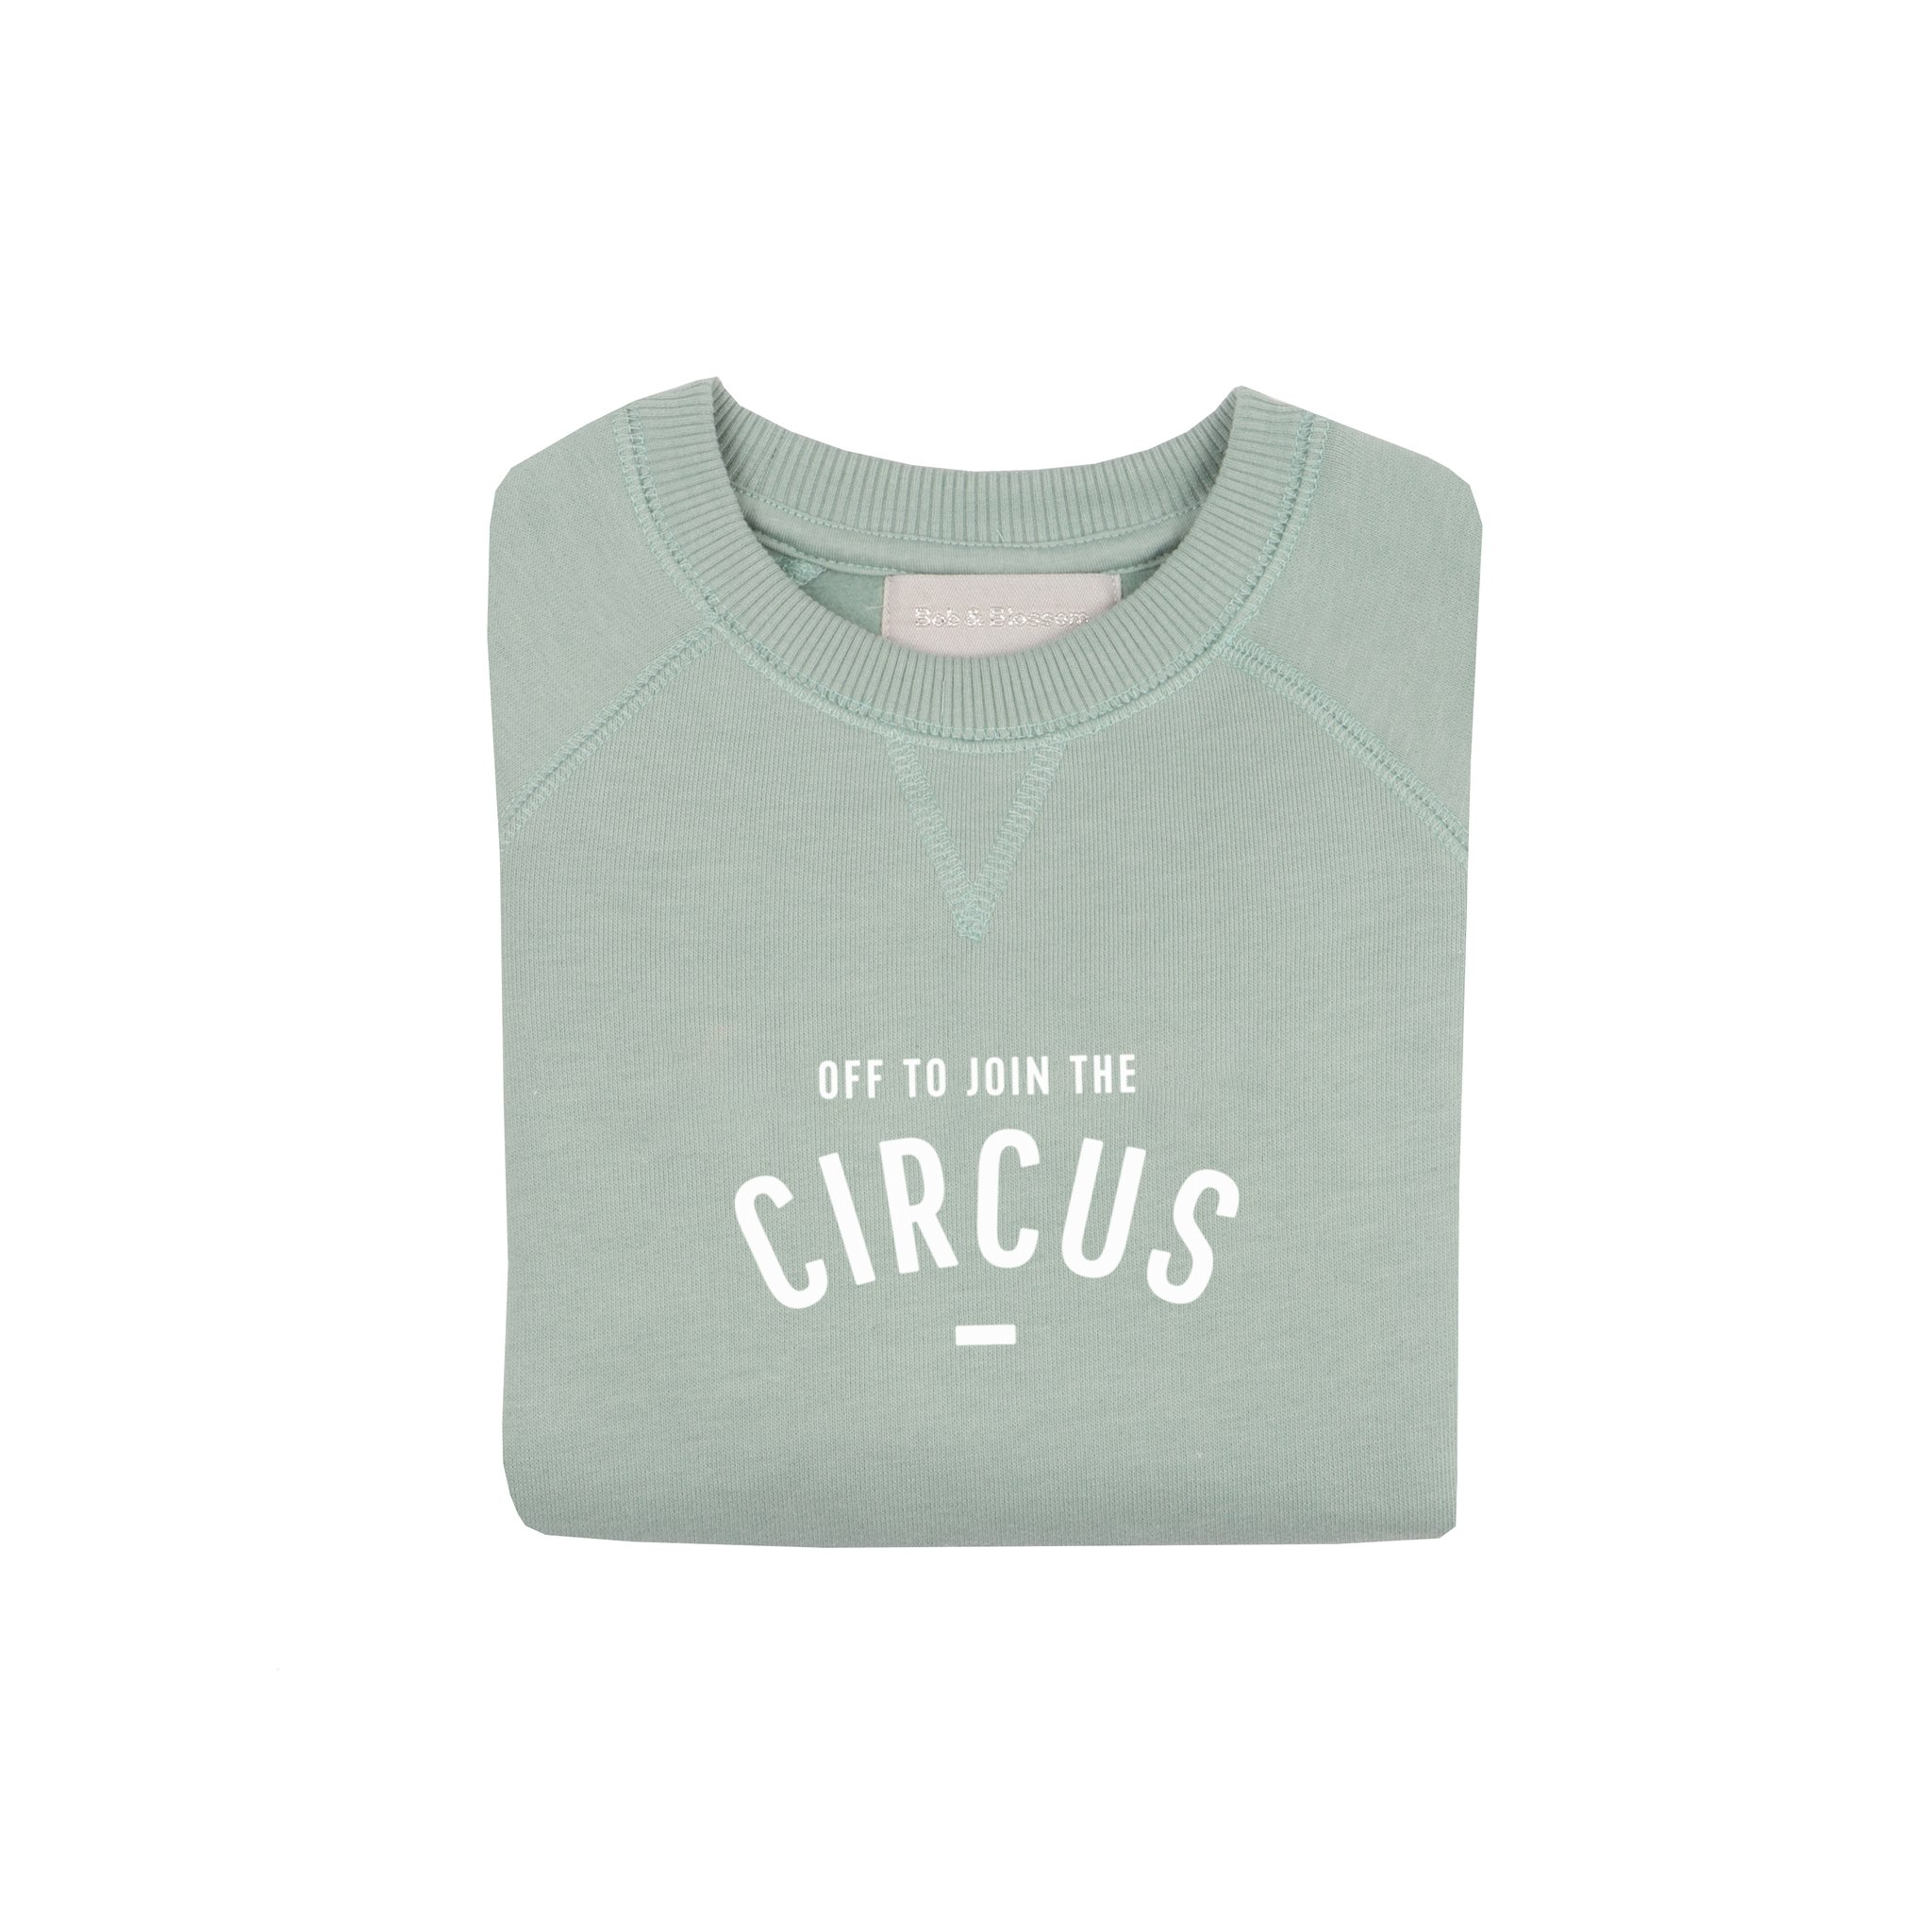 Bob & Blossom 'Off to join the Circus' Sweatshirt - Sage